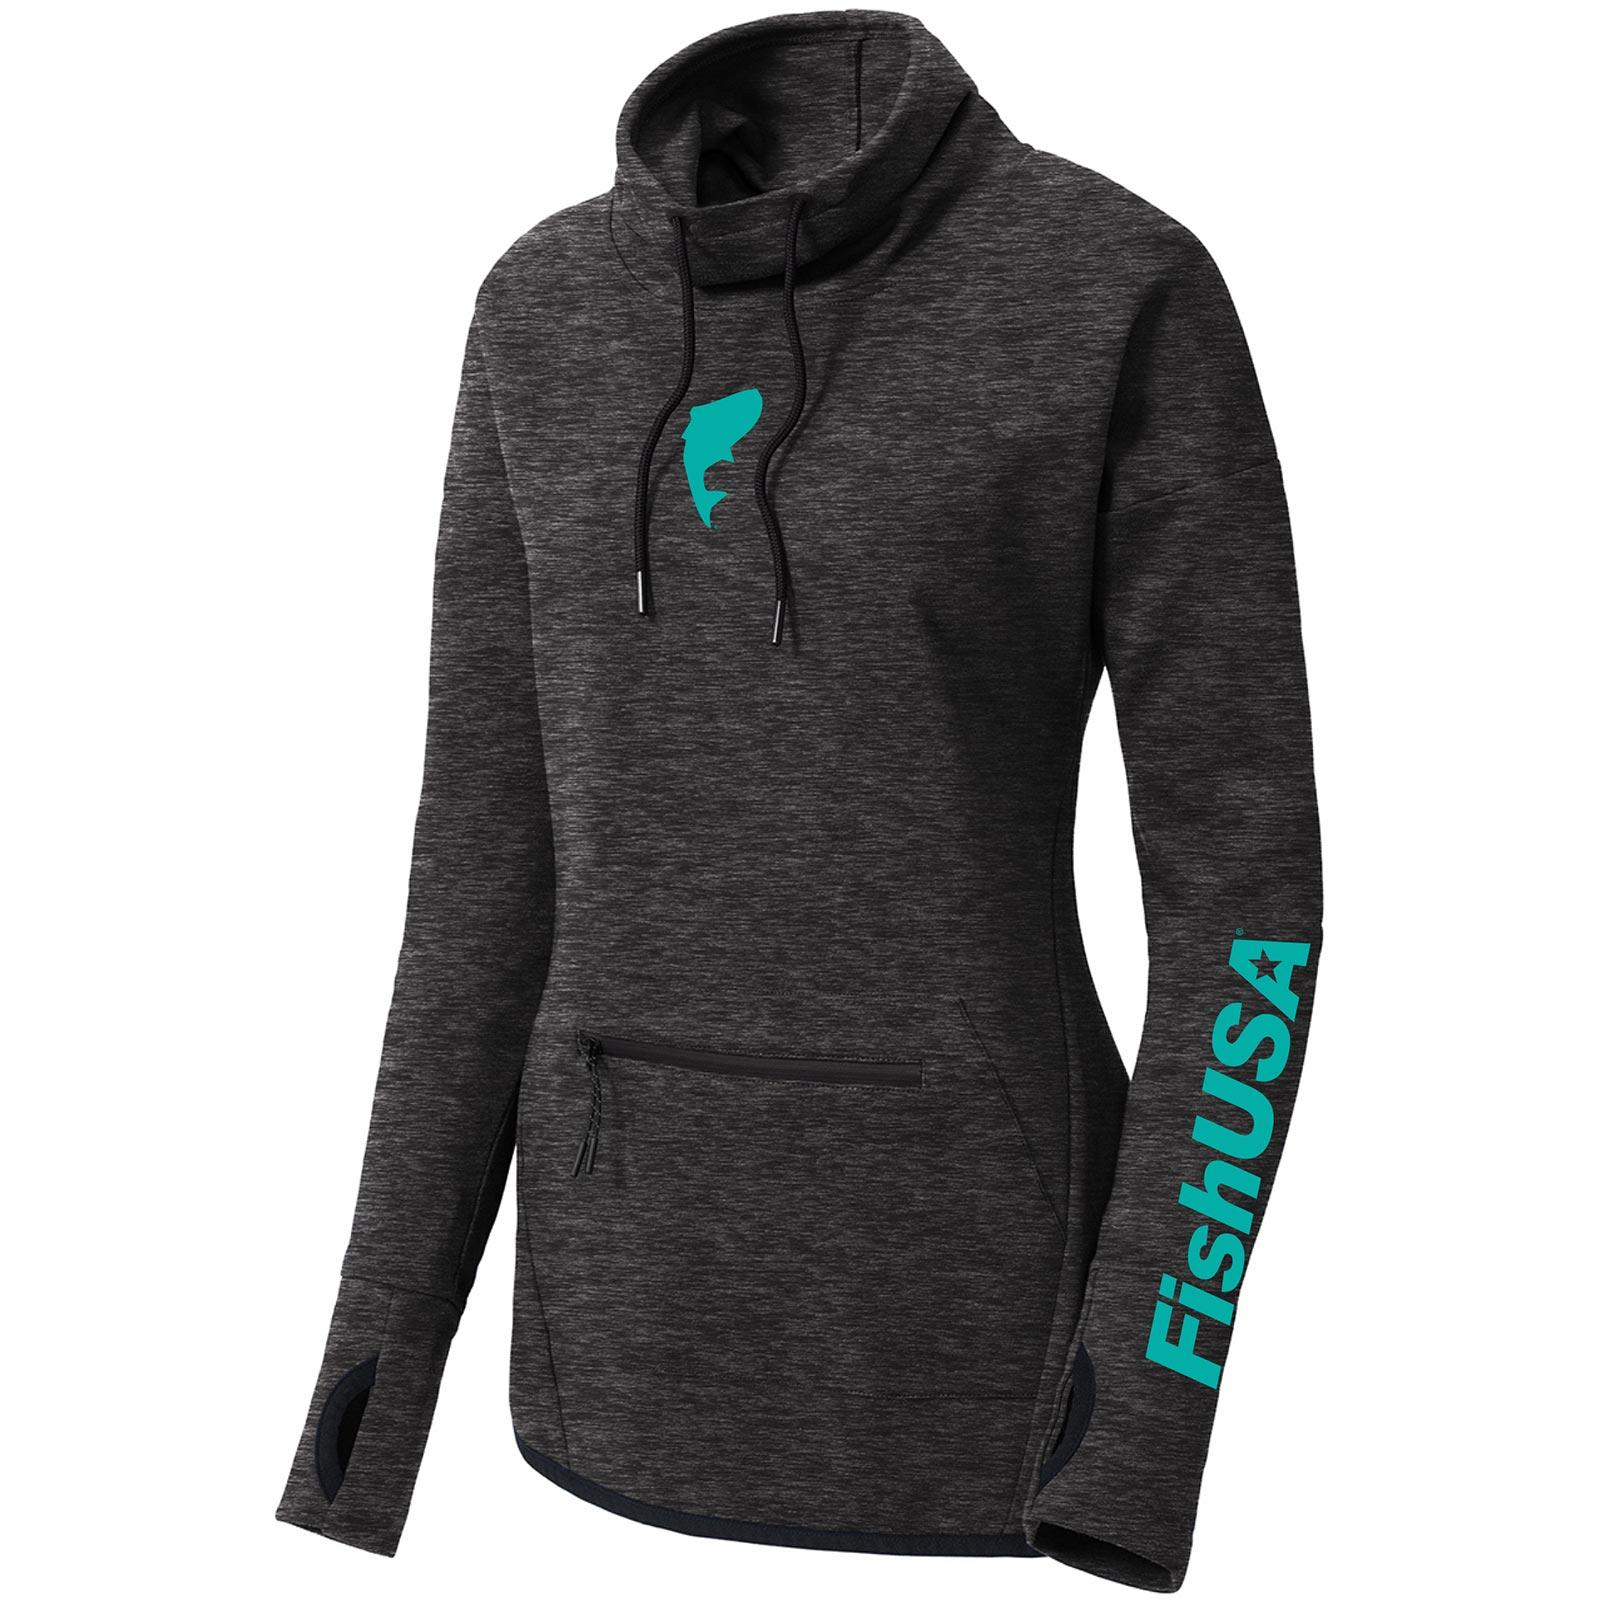 FishUSA Women's Cowl Neck Pullover